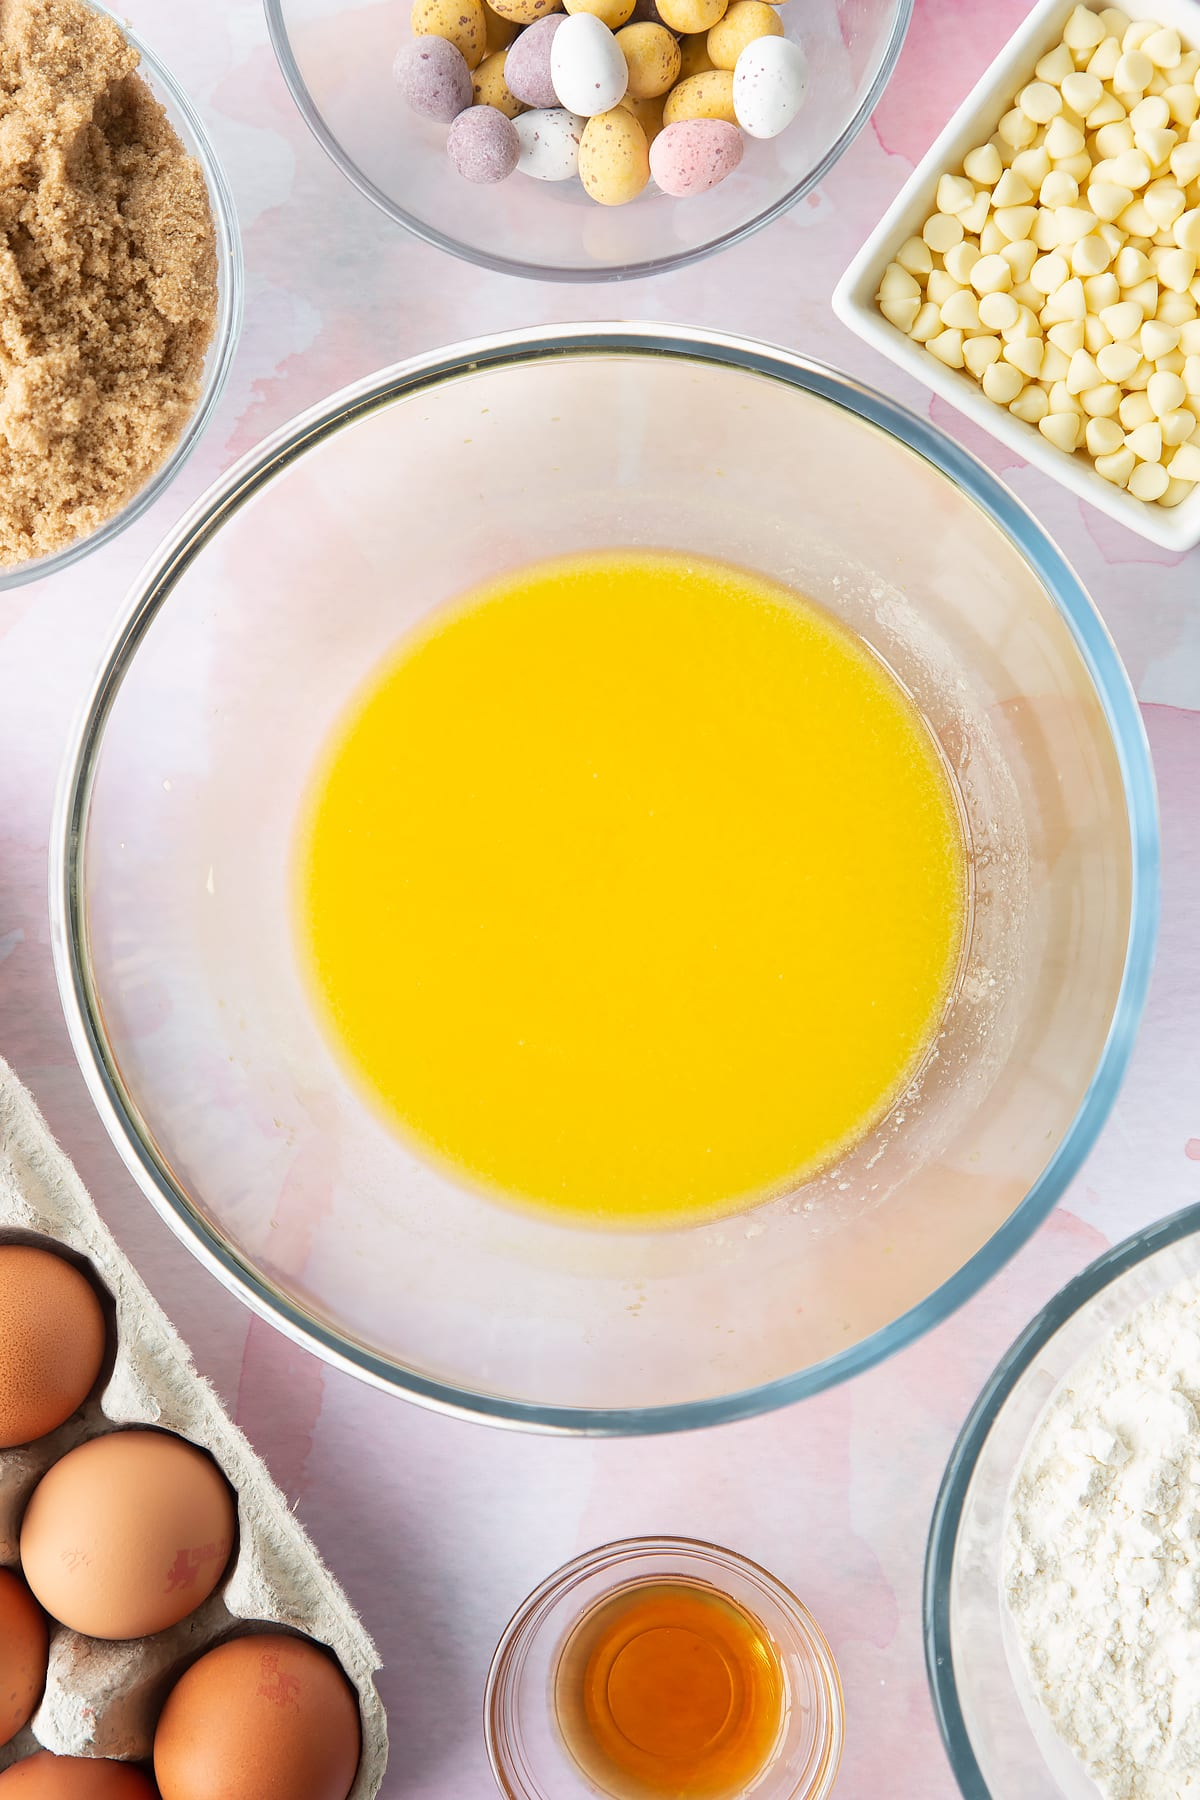 Melted butter in a bowl. Ingredients to make Mini Egg blondies surround the bowl.